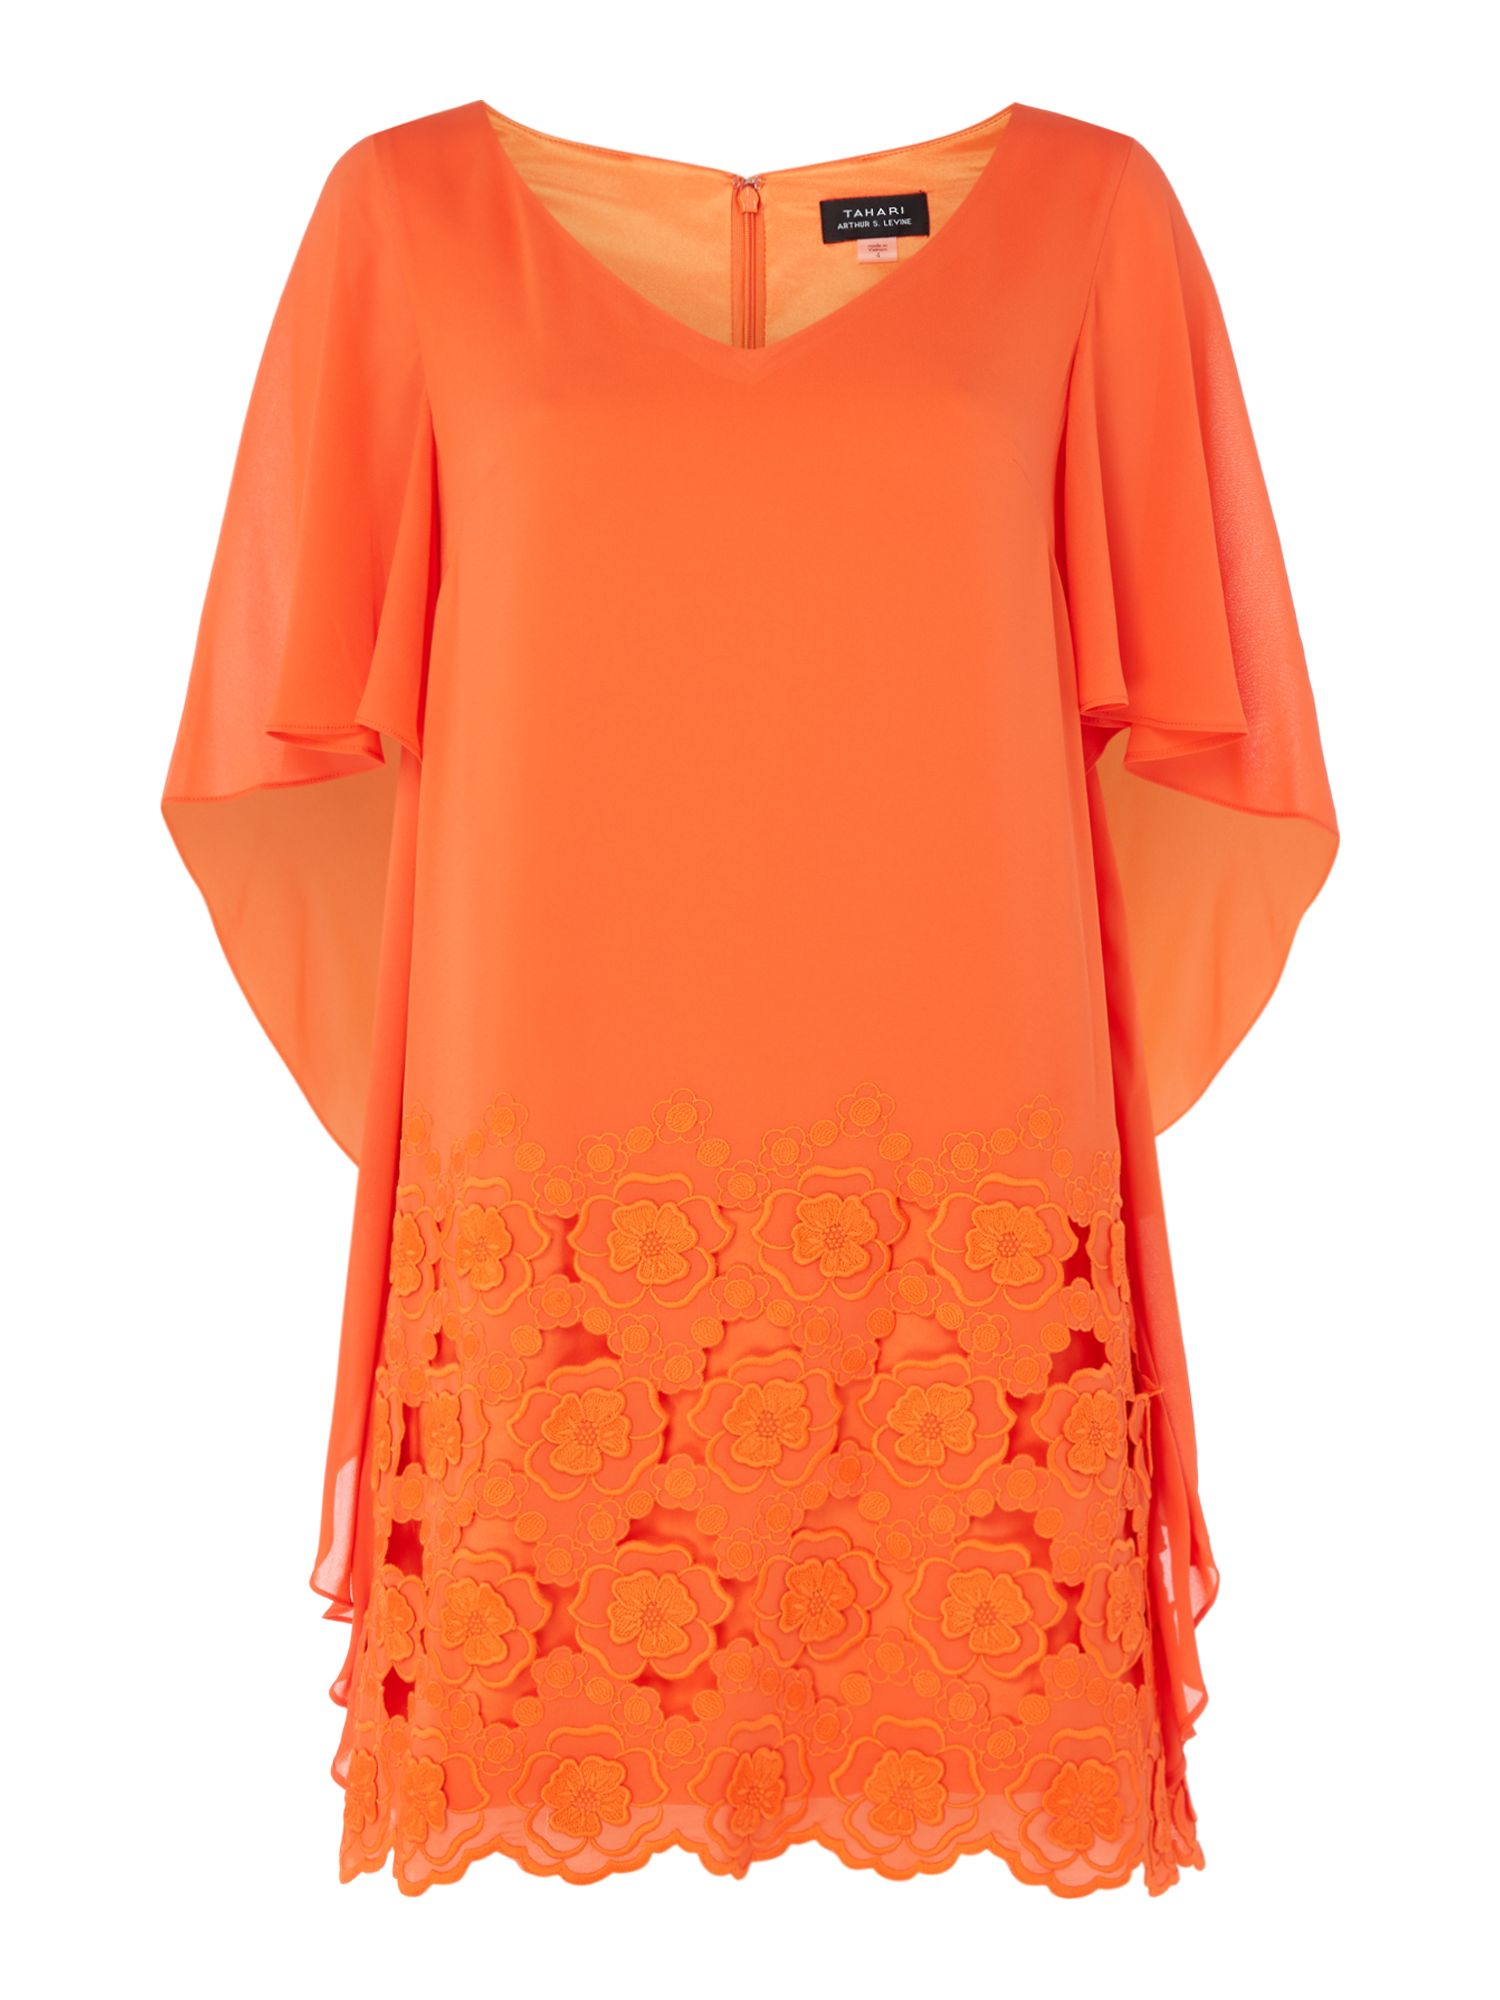 Tahari ASL Waterfall Sleeve Tangerine Shift Dress, Orange